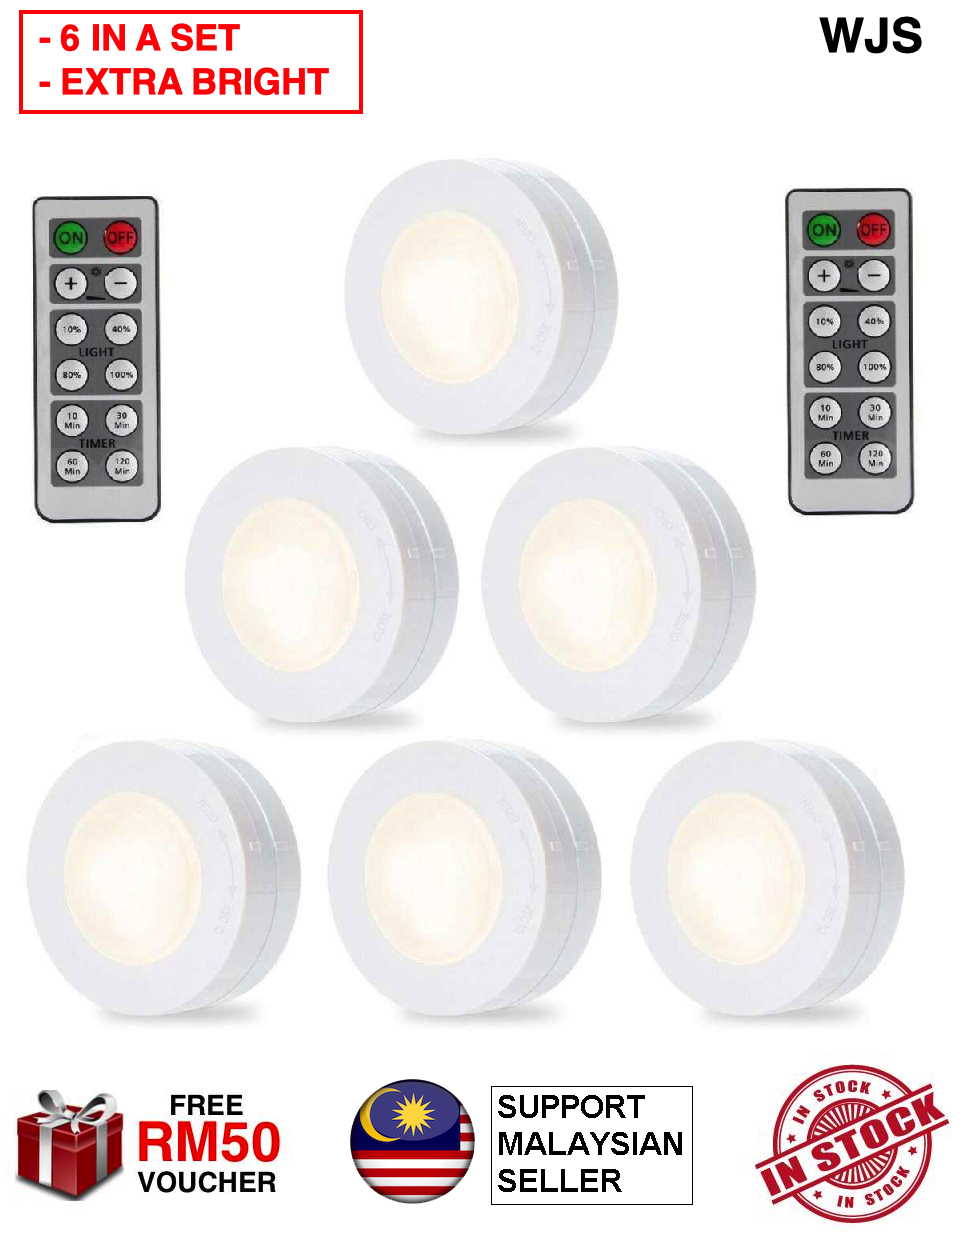 (6 IN A SET) WJS 6pcs 6 pcs Packed LED Puck Lights Remote Controlled Closet Lights Super Bright Under Cabinet Lighting Round Shape Dimmable Light LED Light Puck Light Lampu LED Wardrobe LED Remote Control Light COOL WHITE WARM WHITE [FREE RM 50 VOUCHER]